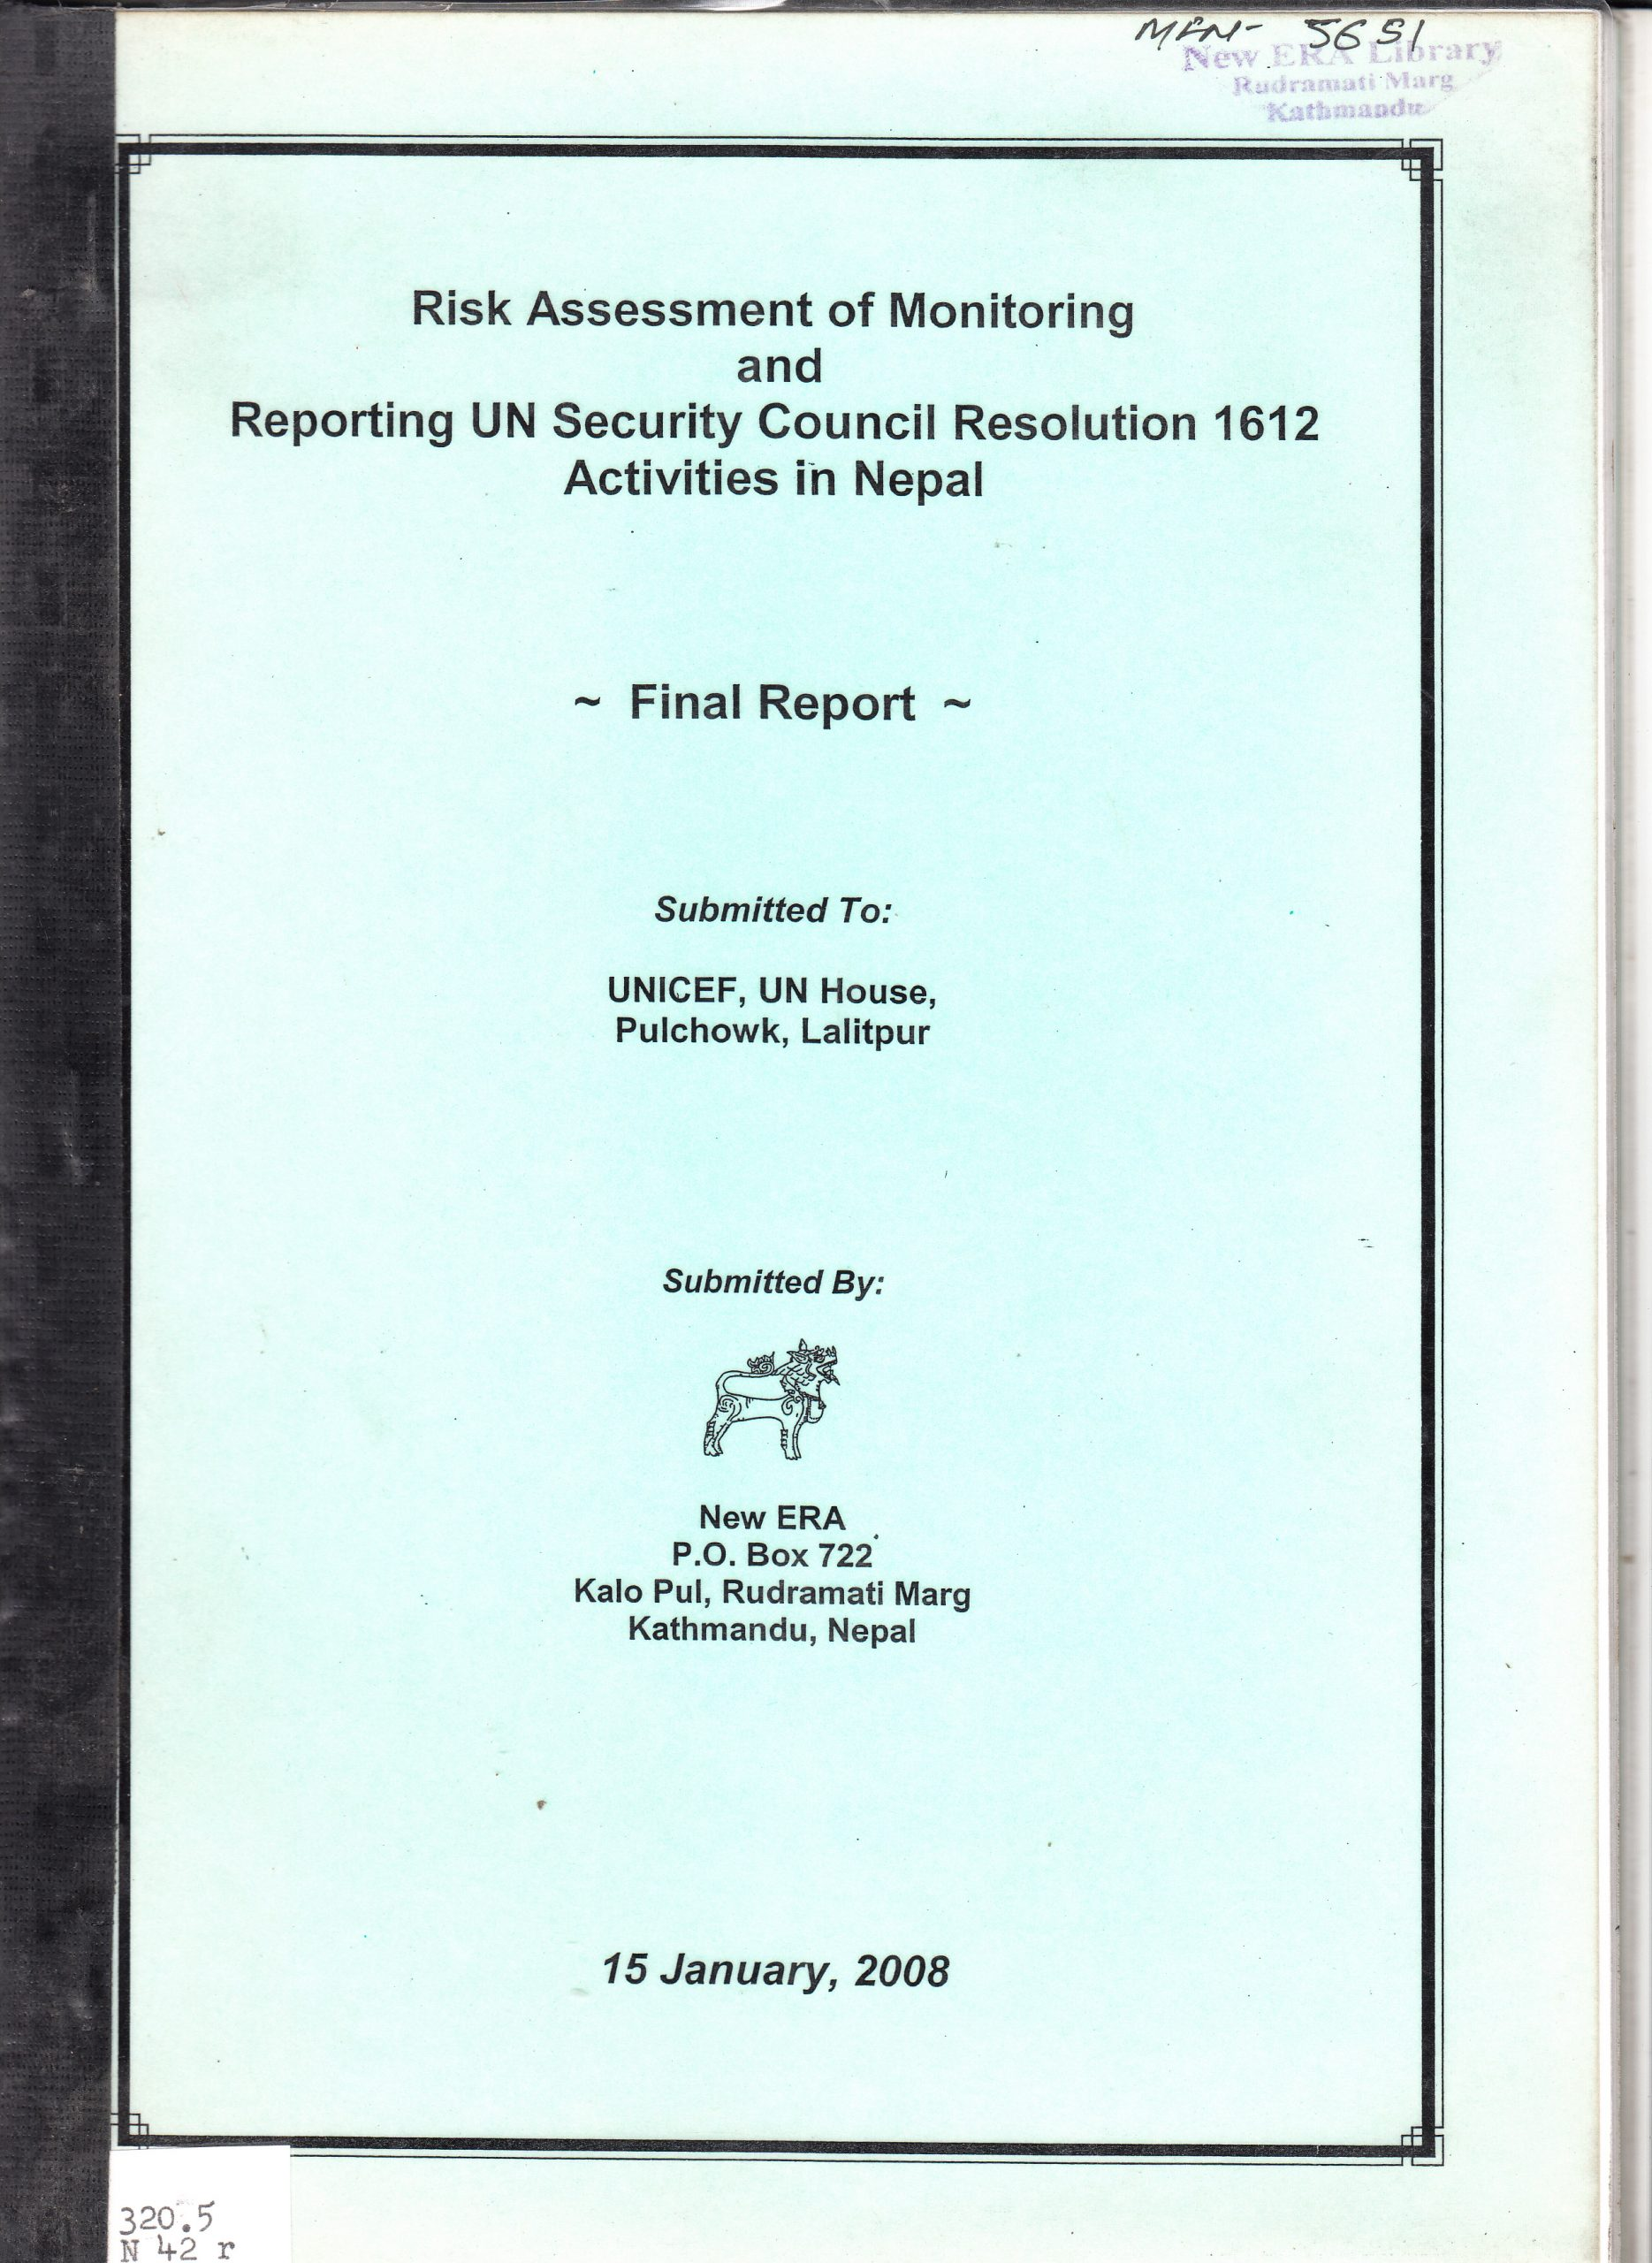 Risk Assessment of Monitoring and Reporting UN Security Council Resolution 1612 Activities in Nepal